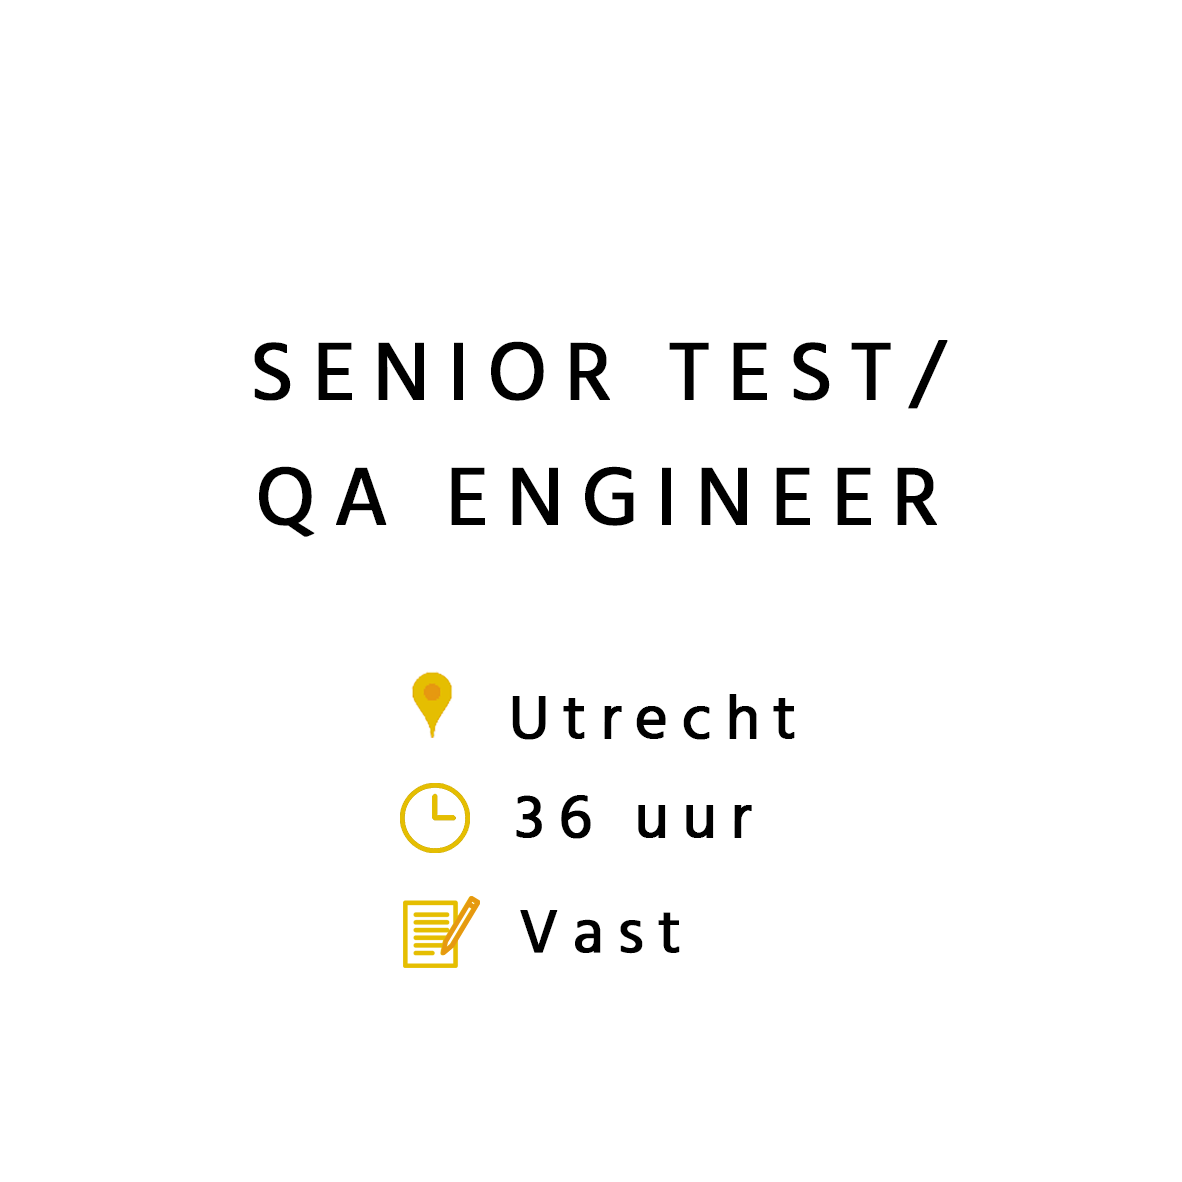 Senior Test / QA Engineer